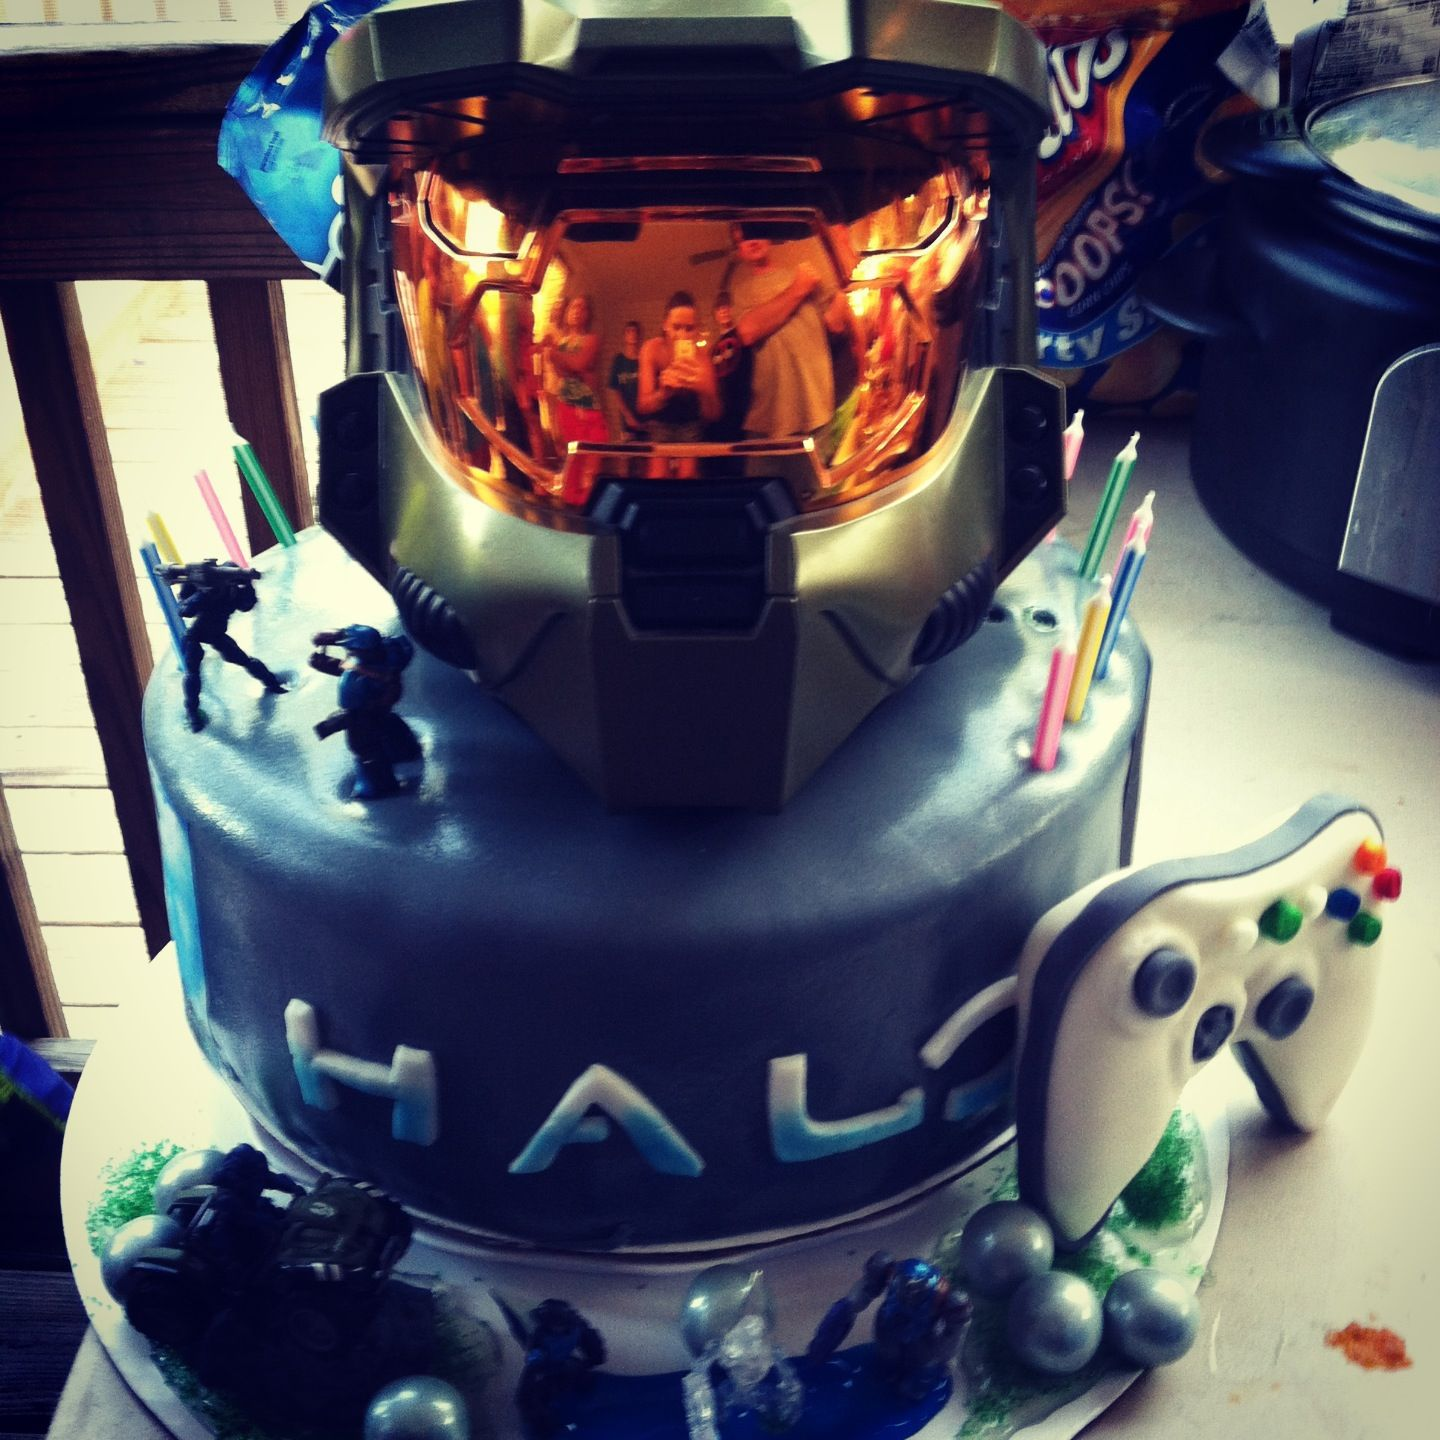 Awesome Halo Themed Cake With Masterchief Helmet Xbox And